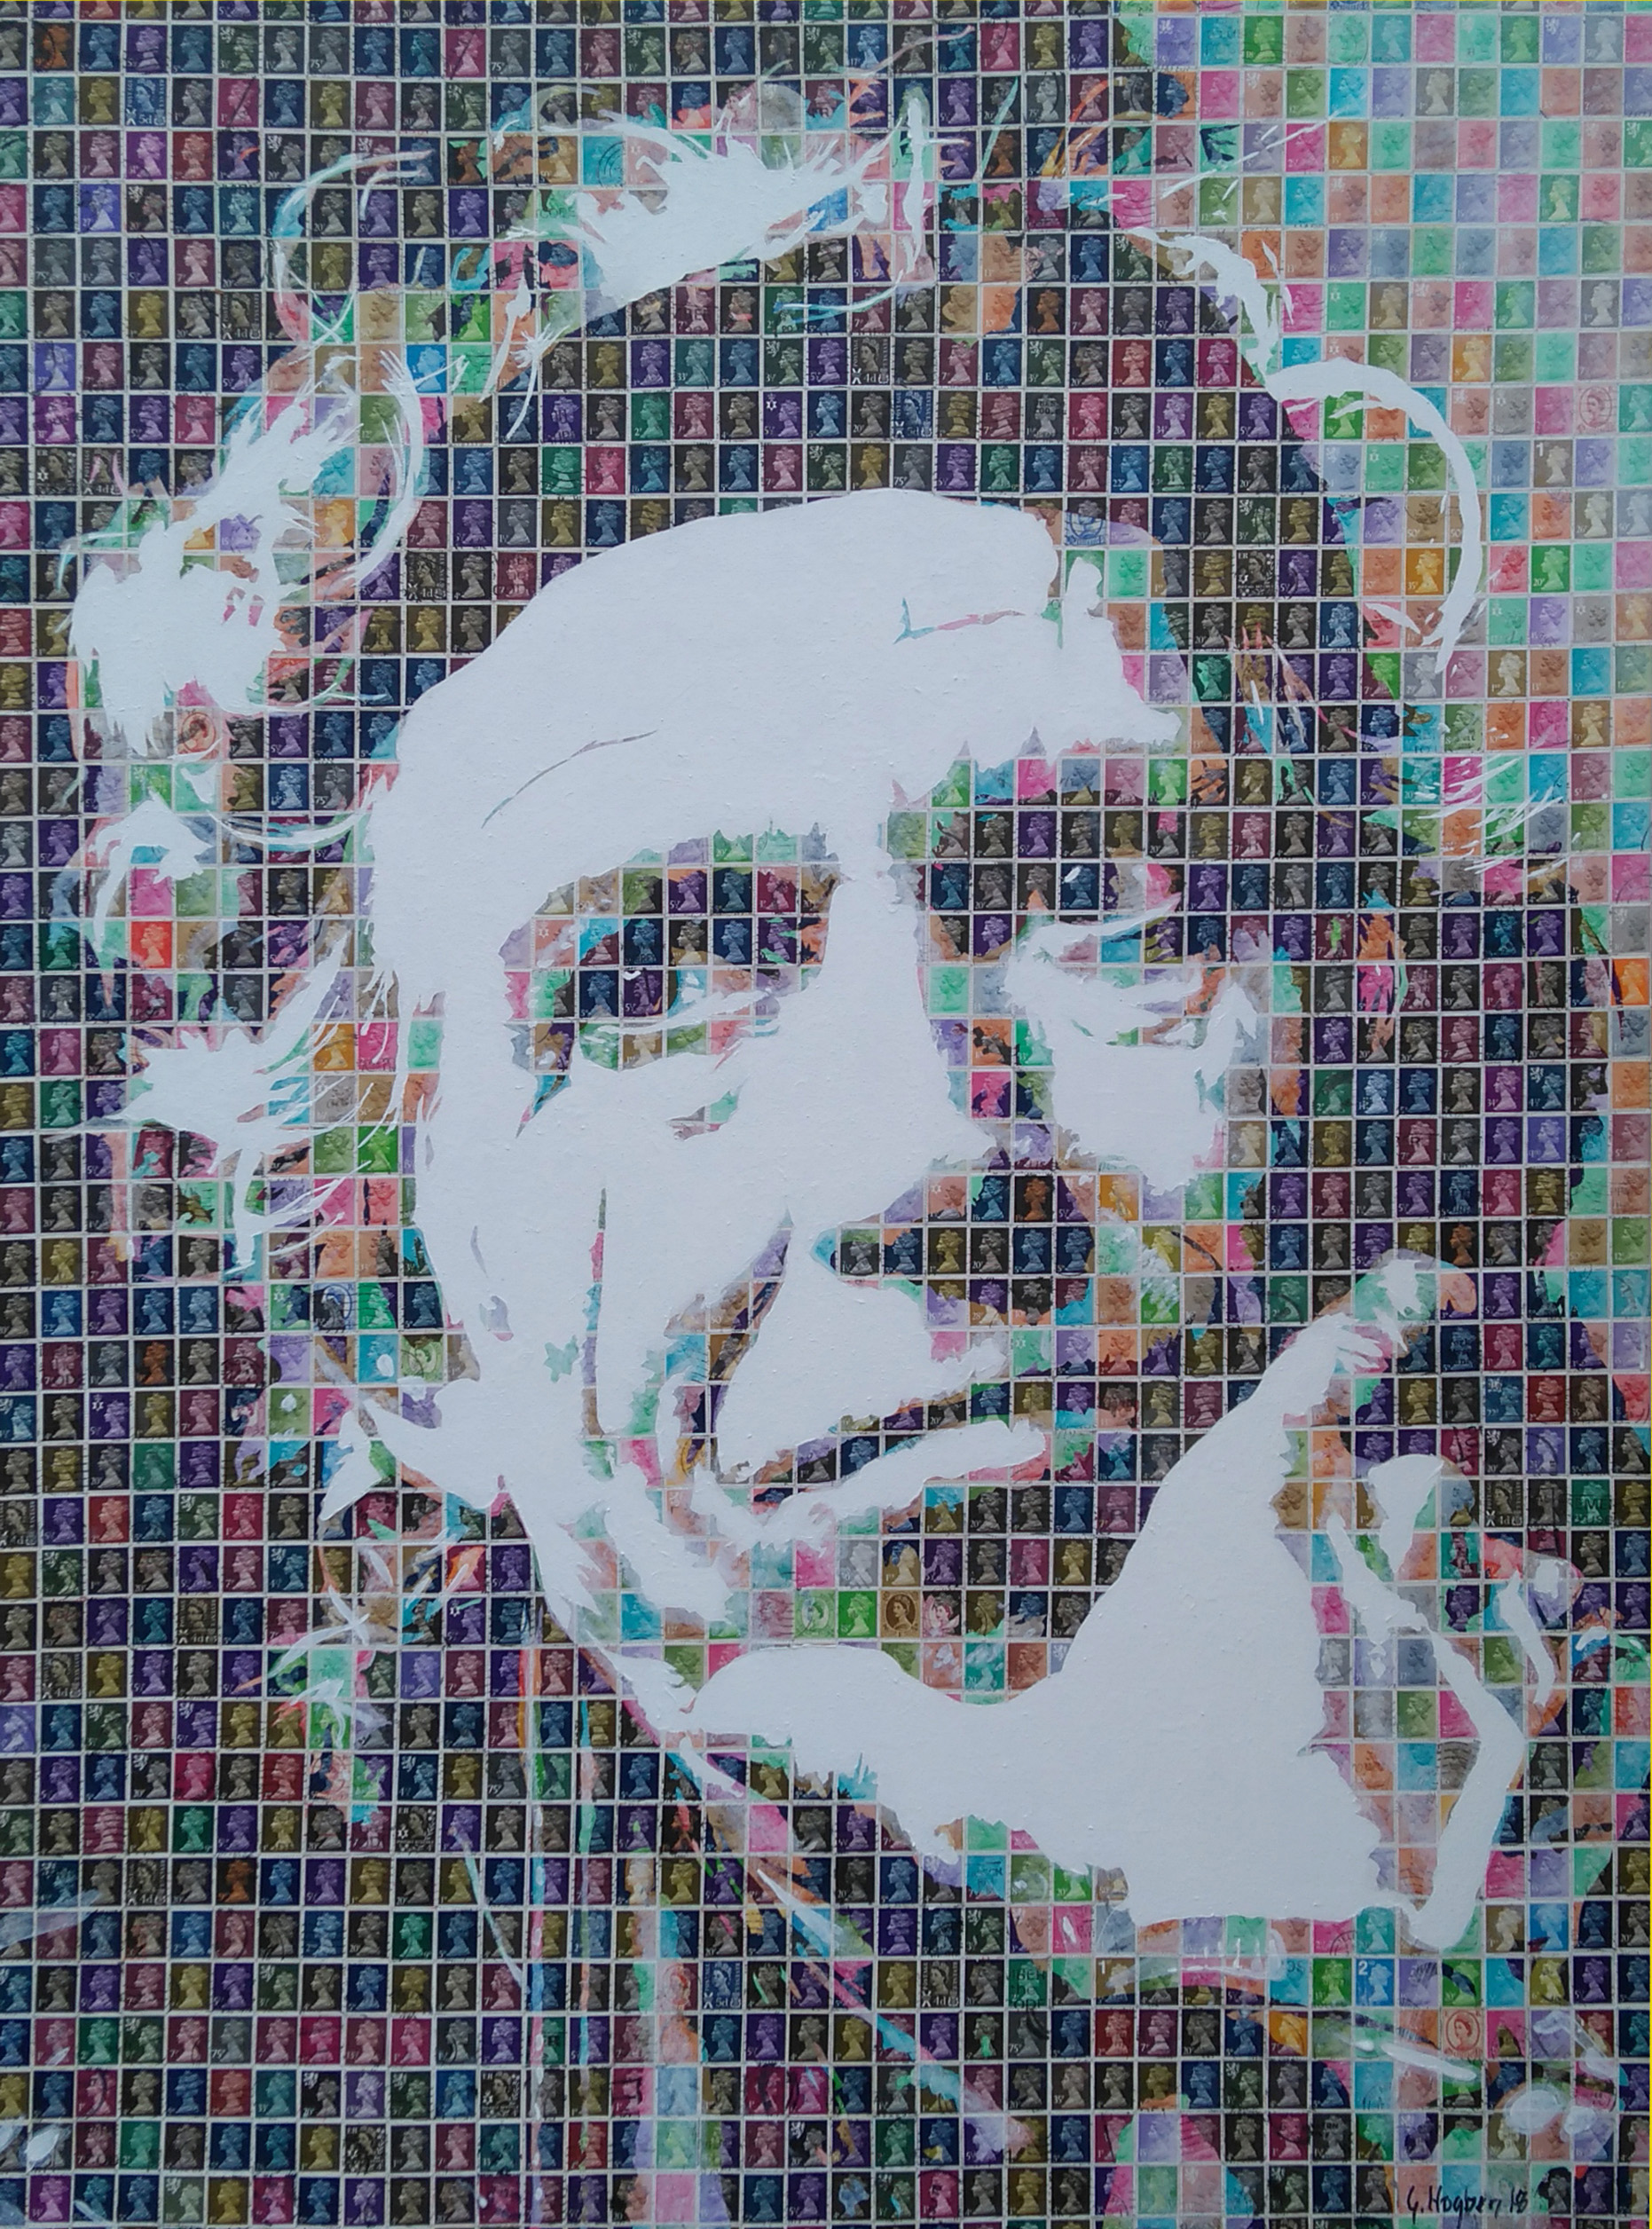 Keith Richards, 2018 | Stamps and acrylics on canvas |. 76 x 102 cm |£3,000